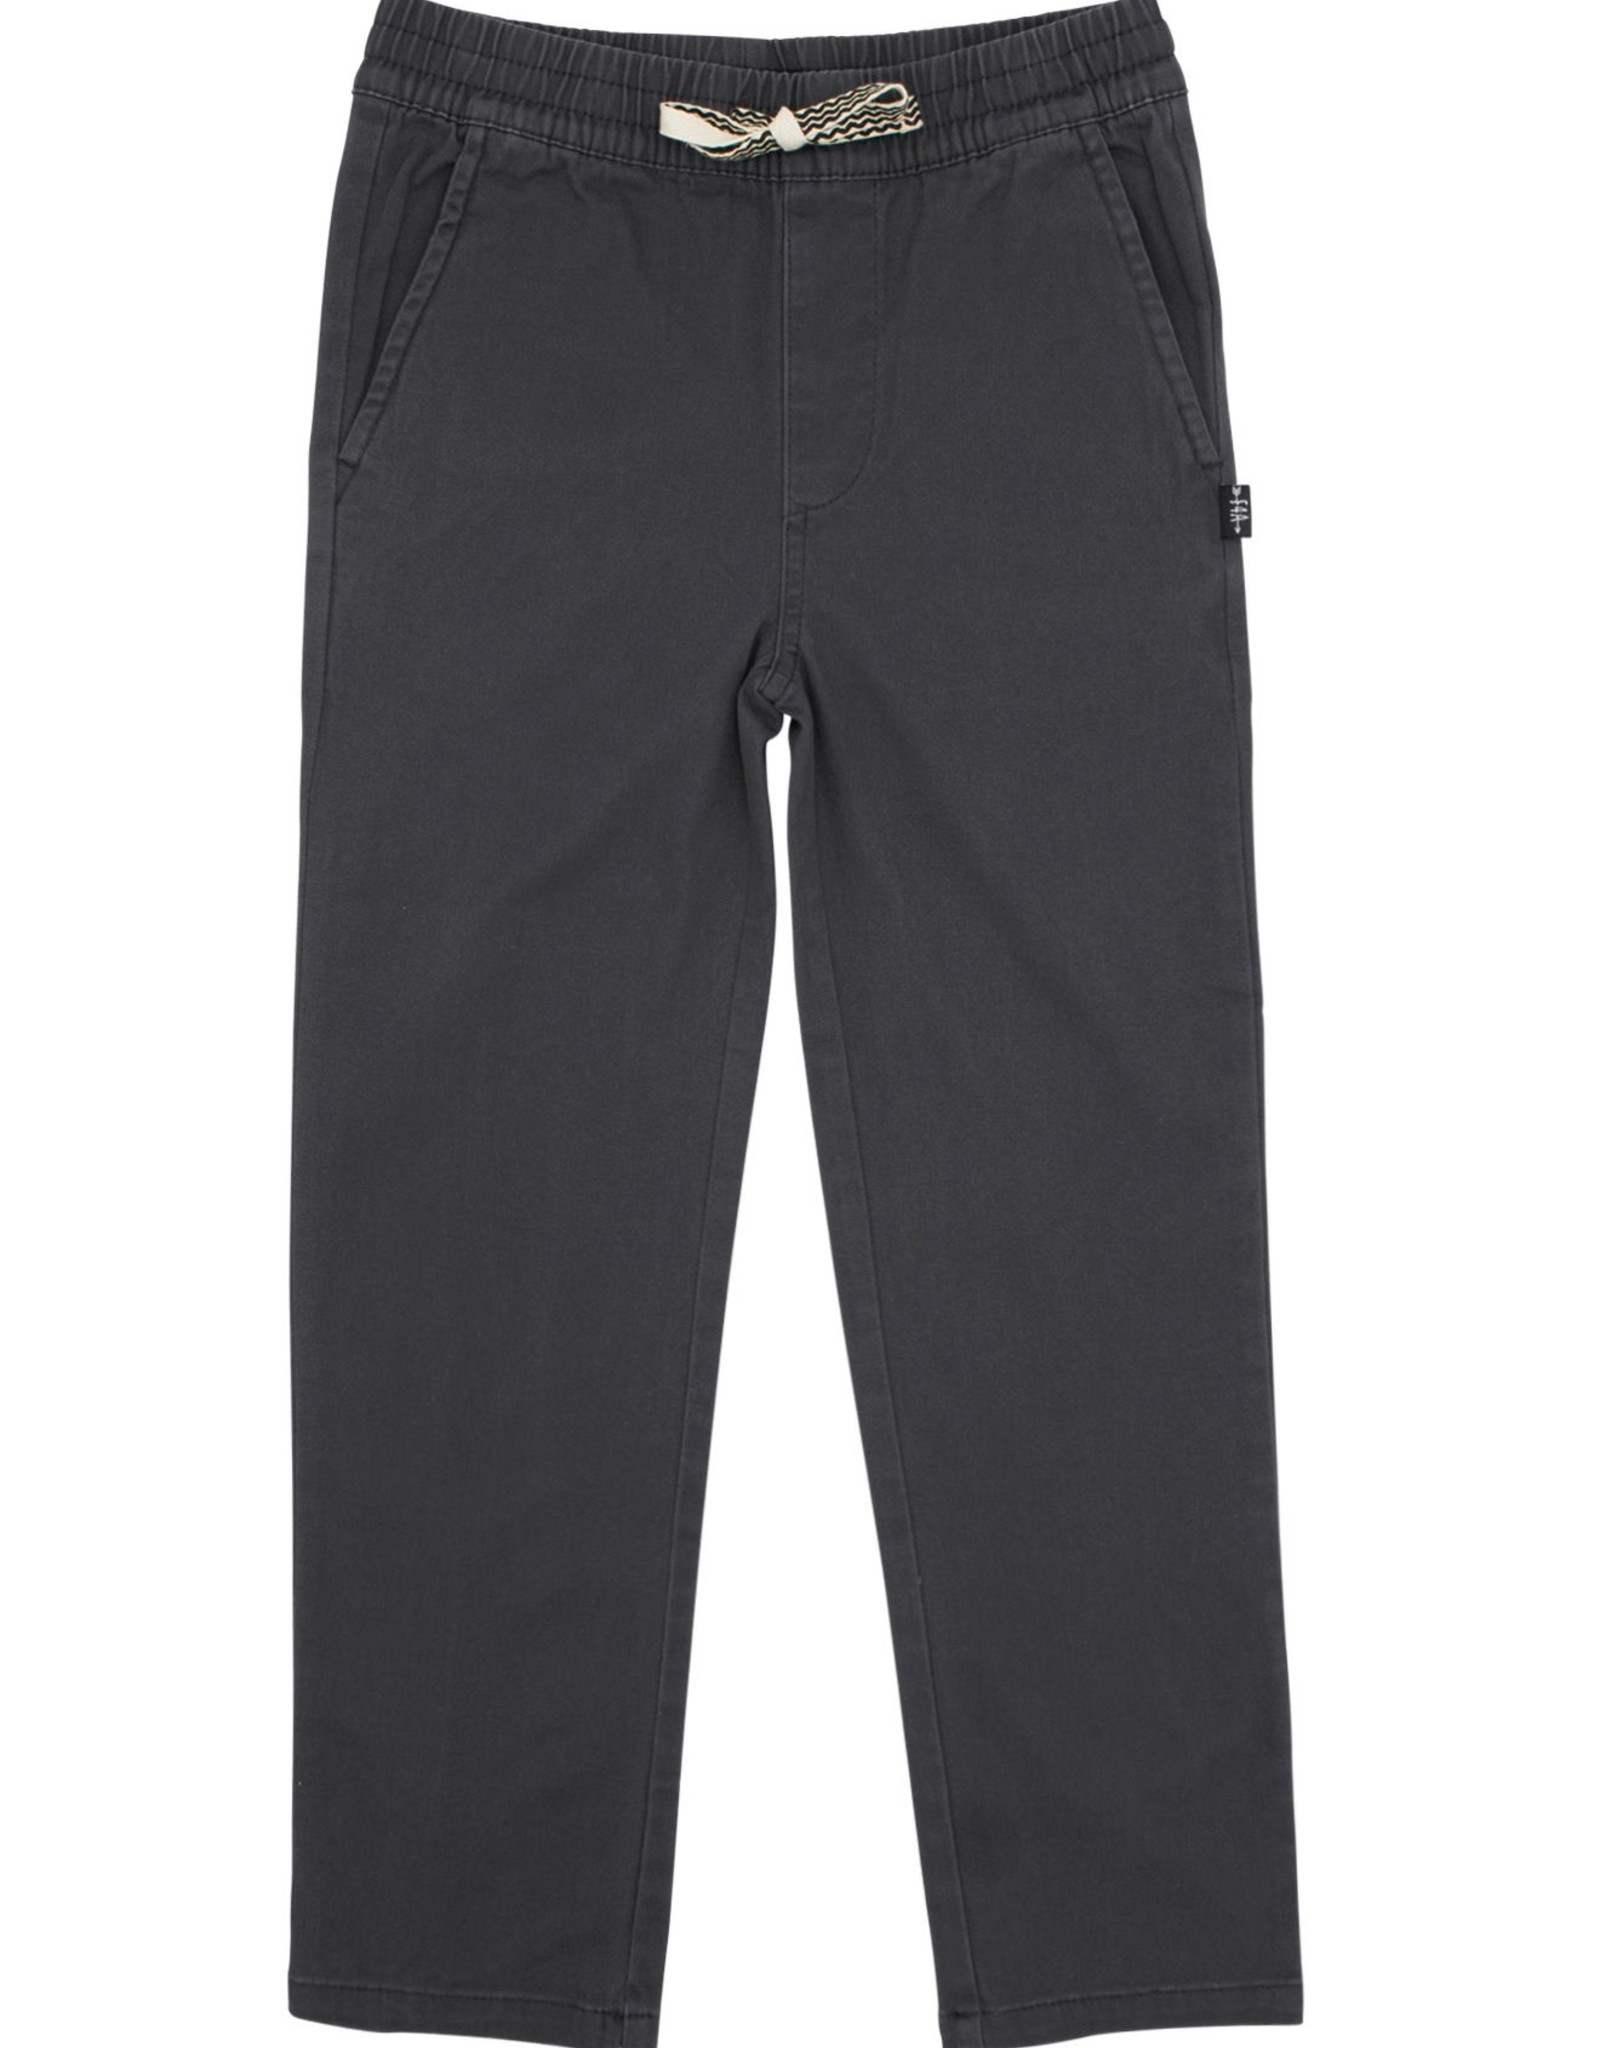 Feather 4 Arrow weekender chino- charcoal